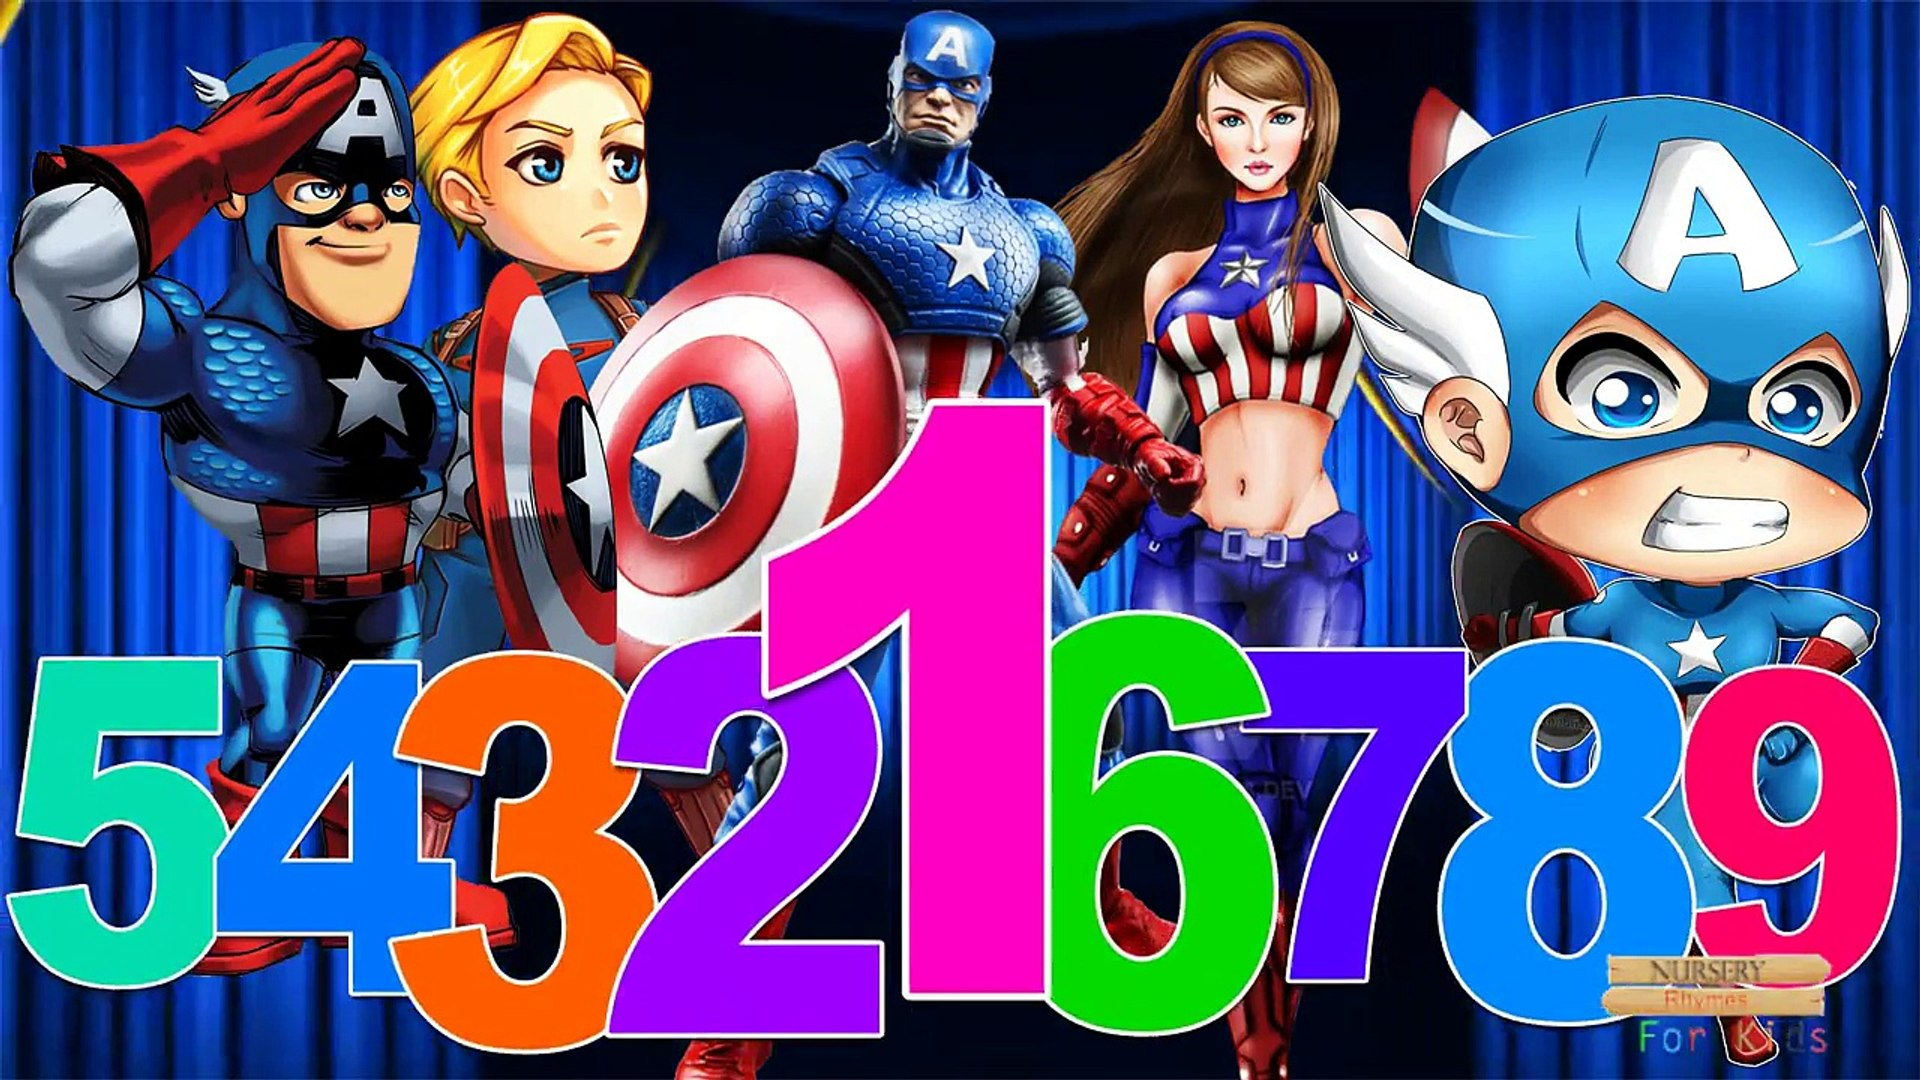 Learn 123 Song By Captain America | 123 Numbers Children Nursery Rhymes | 123 Songs For Kids